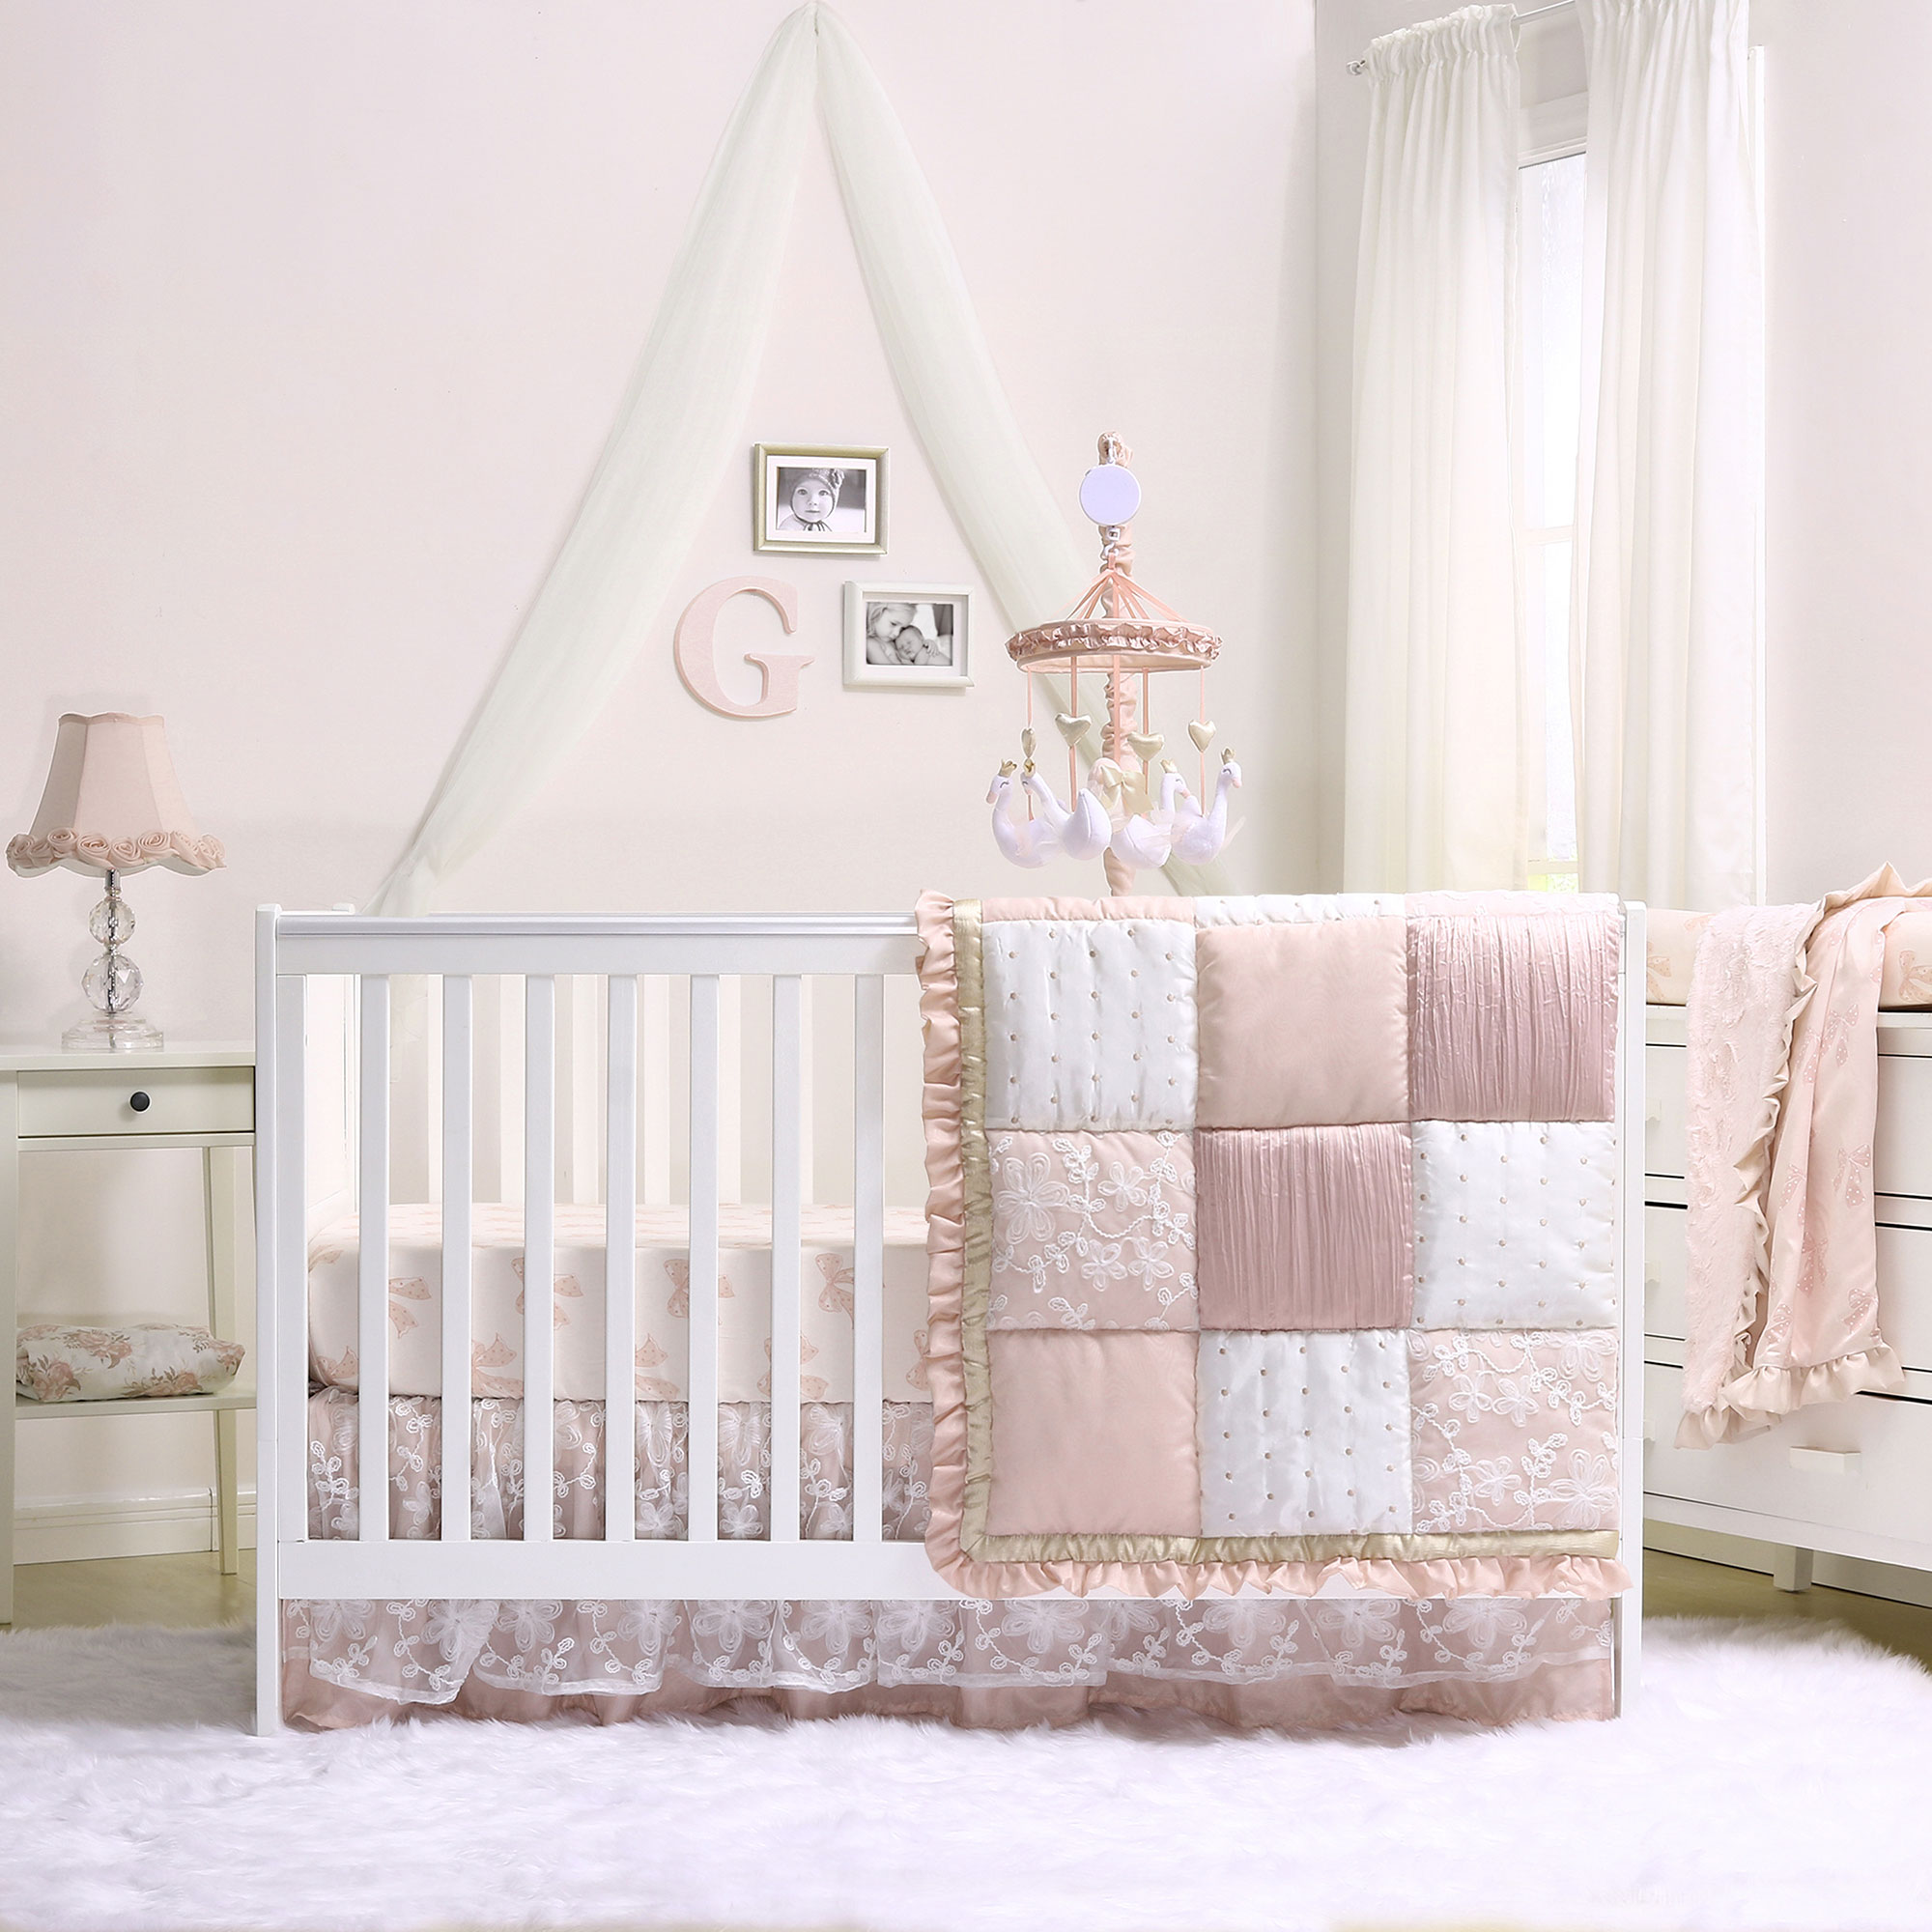 Baby Girl Crib Bedding - Dusty Pink Patchwork Design - Grace 7 Piece Set by The Peanut Shell